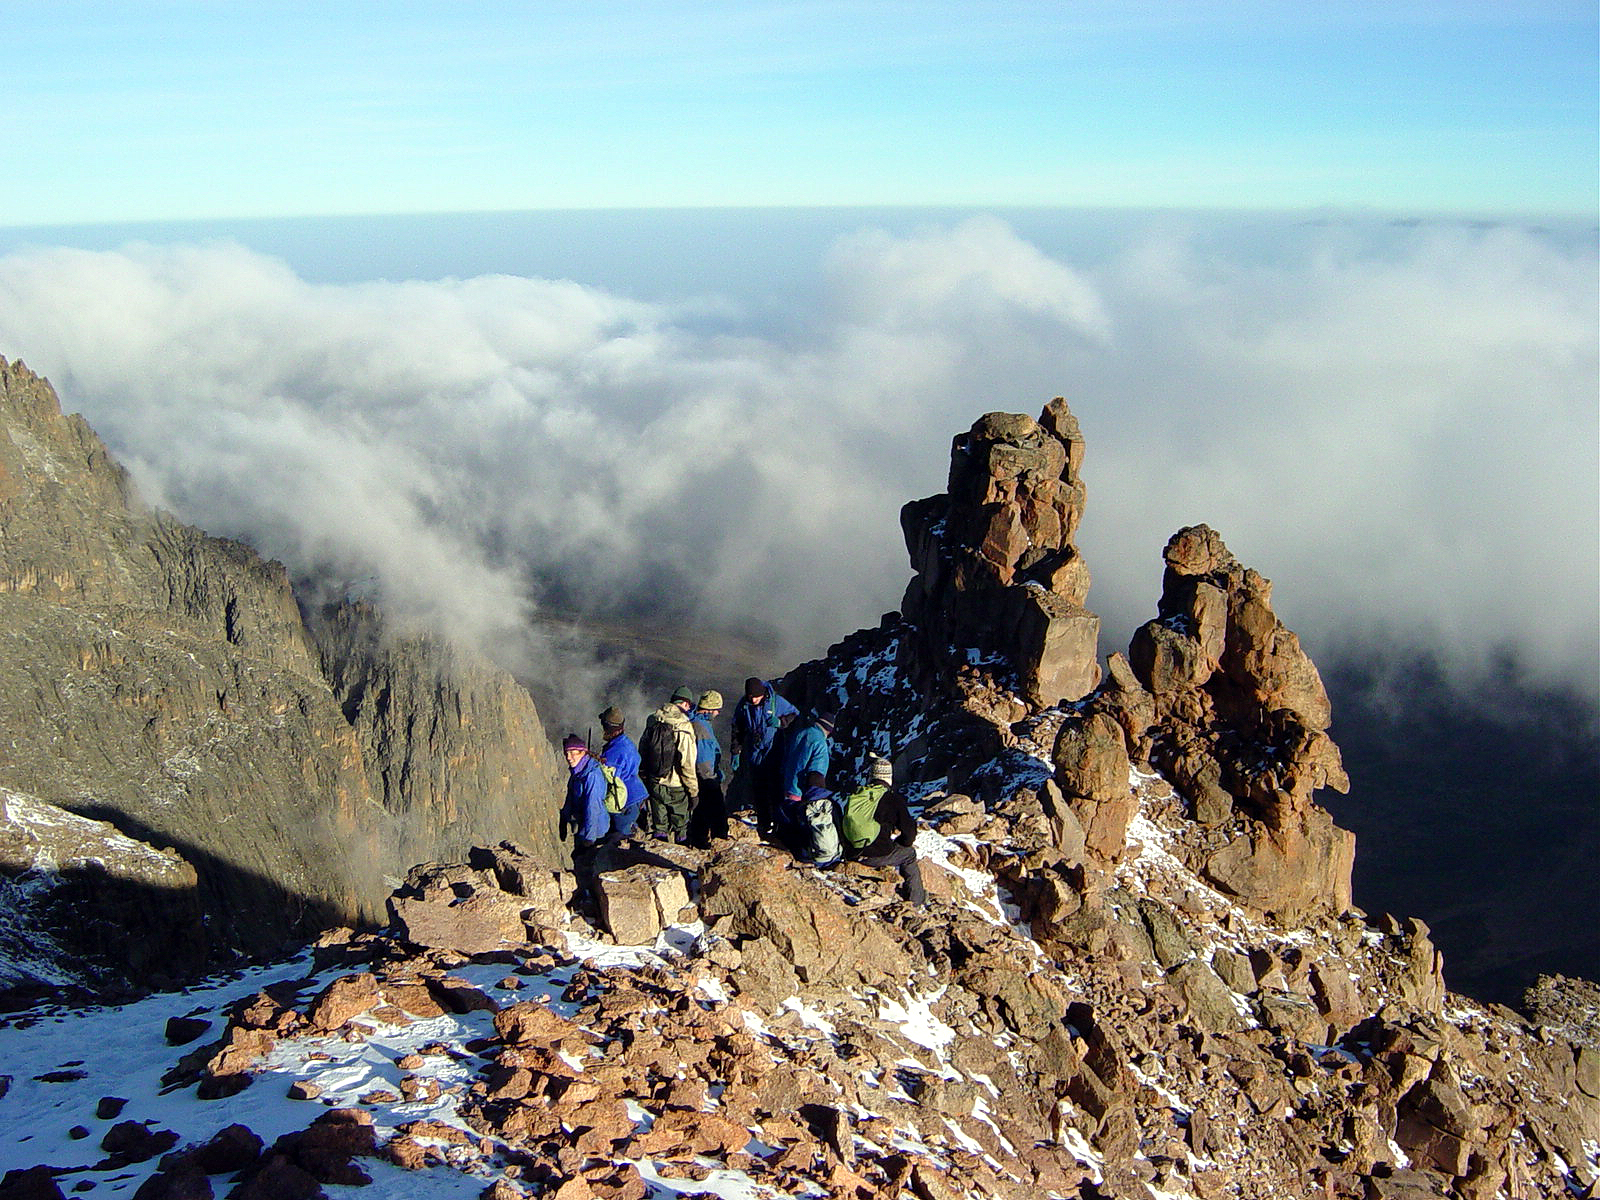 A group takes a break atop a rocky outcropping surrounded by wispy clouds at an altitude of 16,000 feet.